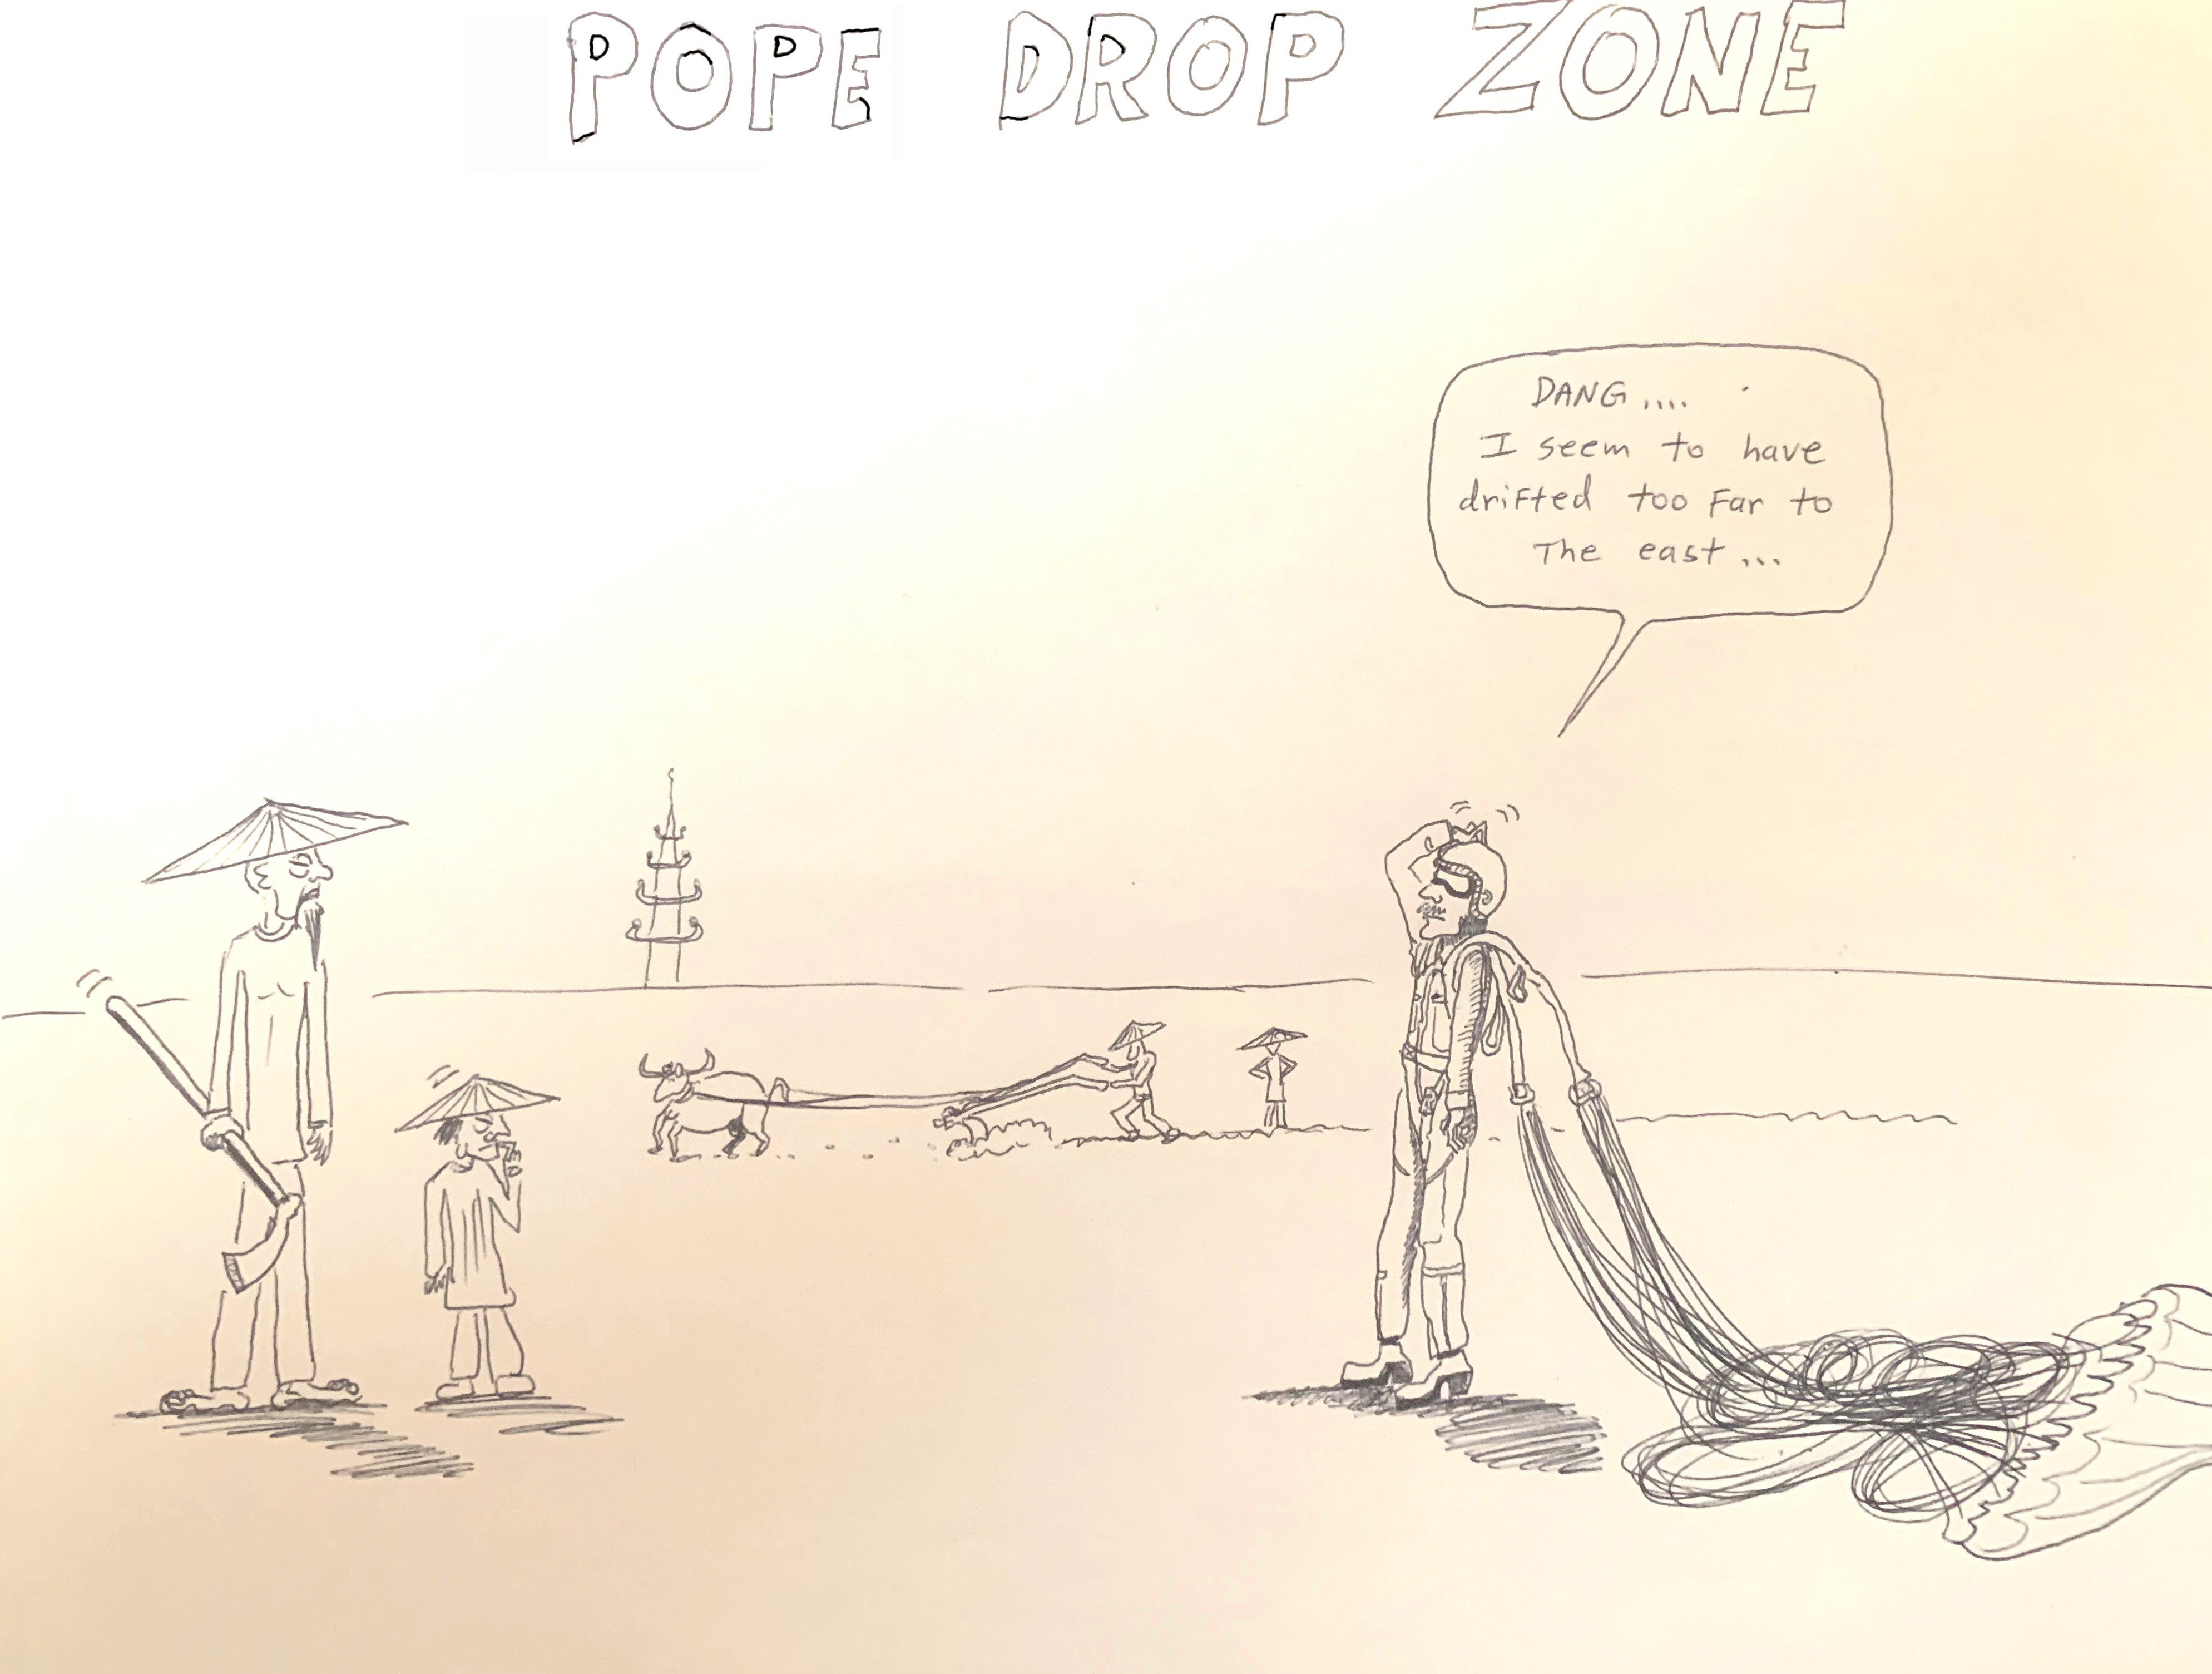 Never miss the drop zone when the Unit Cartoonist is watching